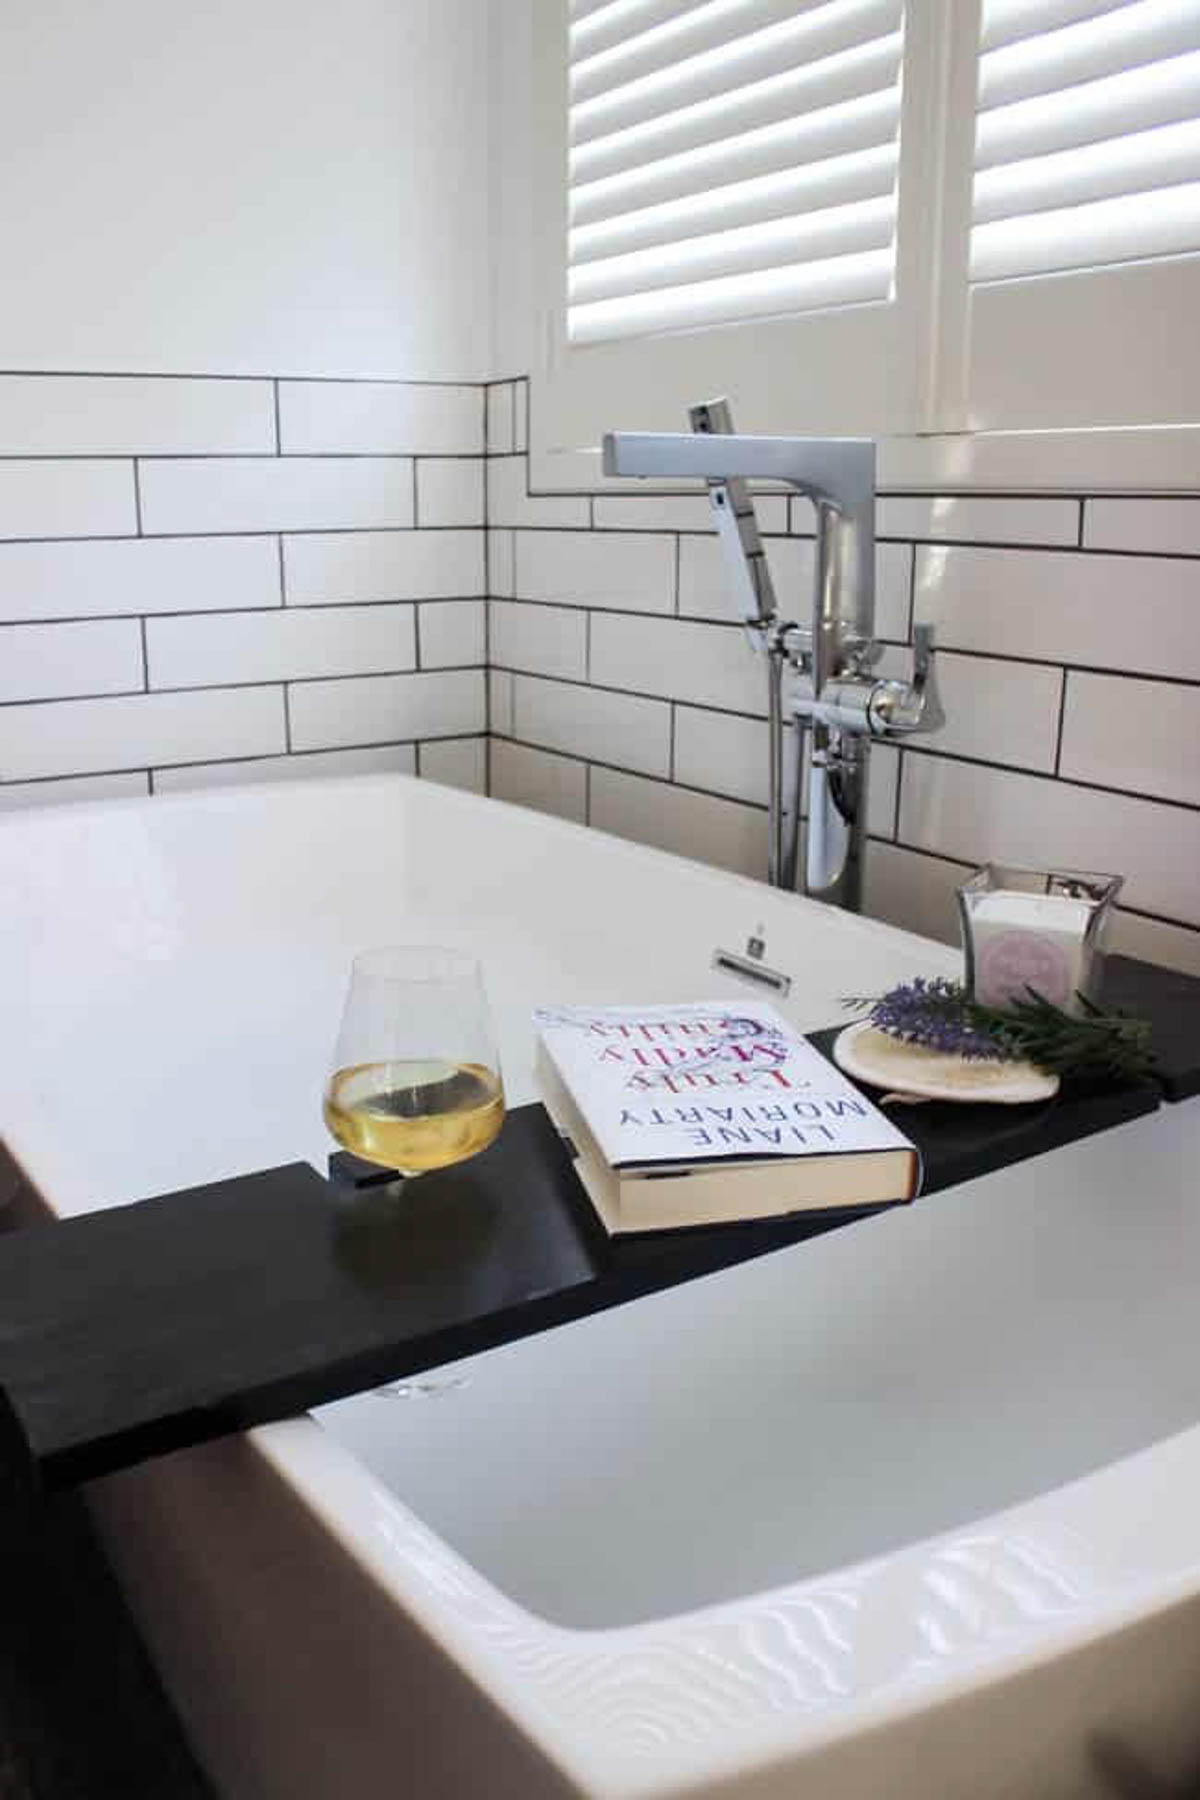 DIY bath tray with book, candle and wine glass